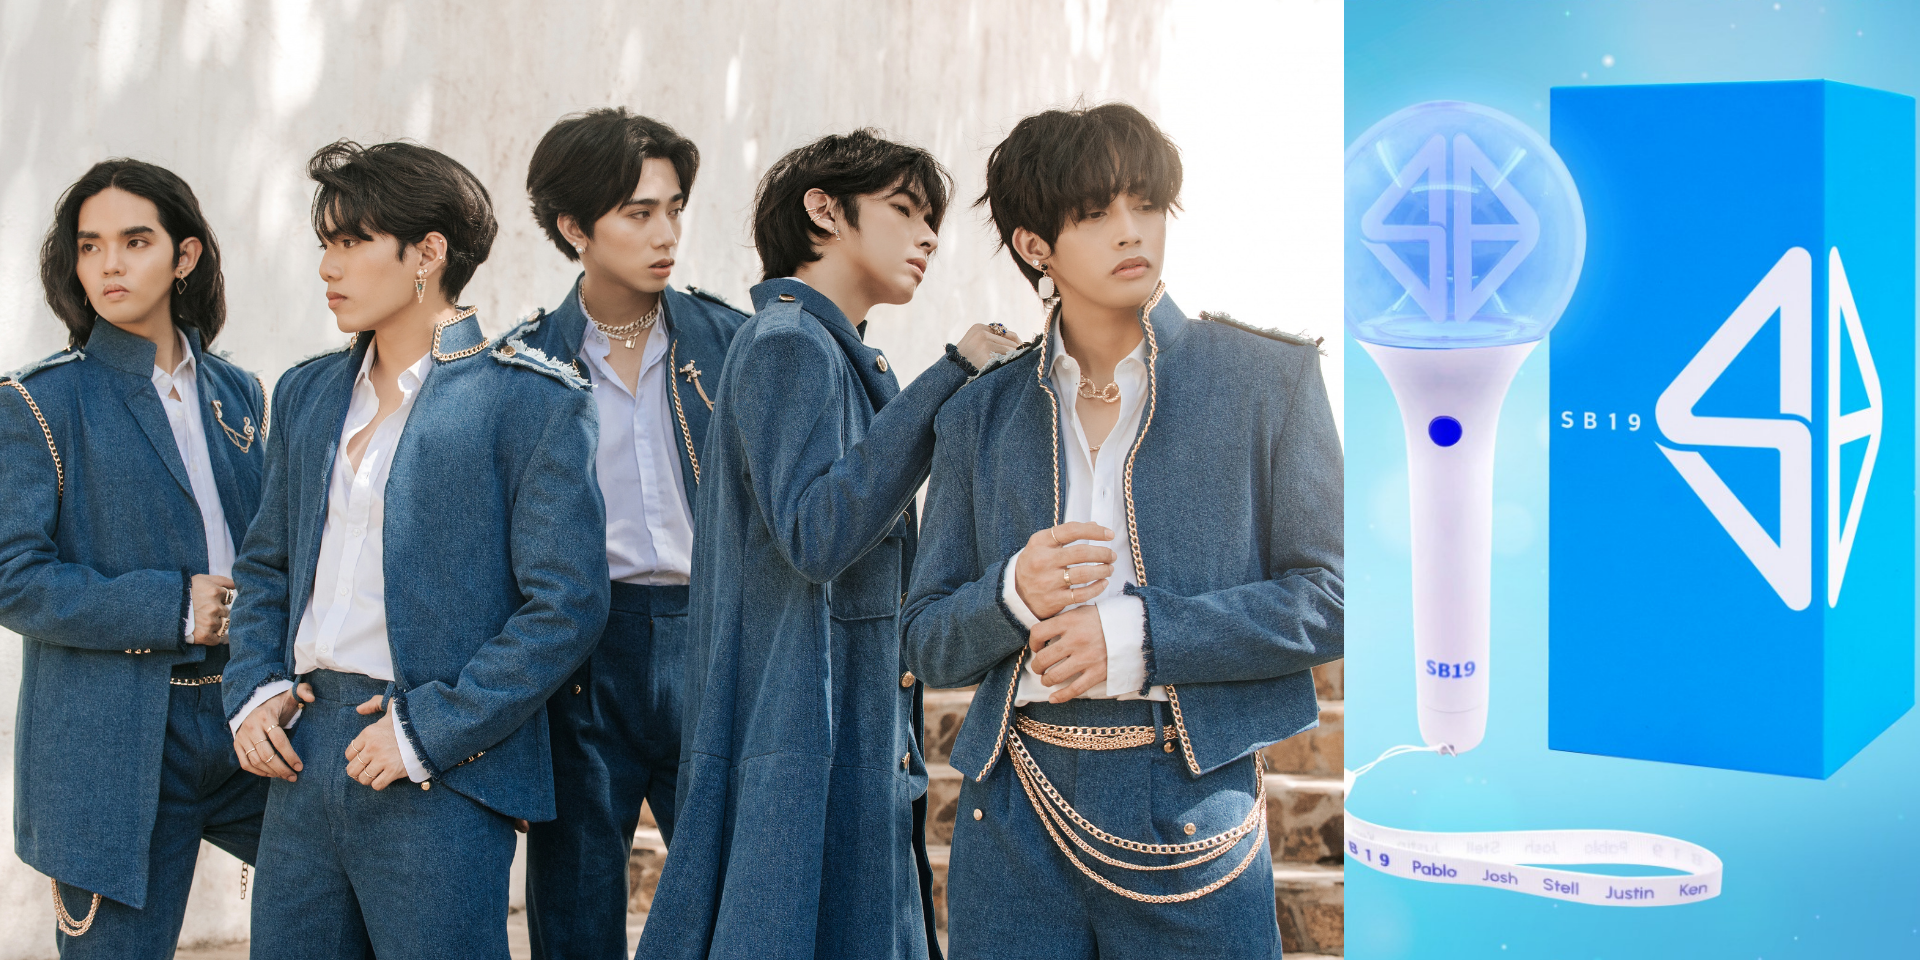 SB19 unveil new version of official lightstick for 3rd anniversary